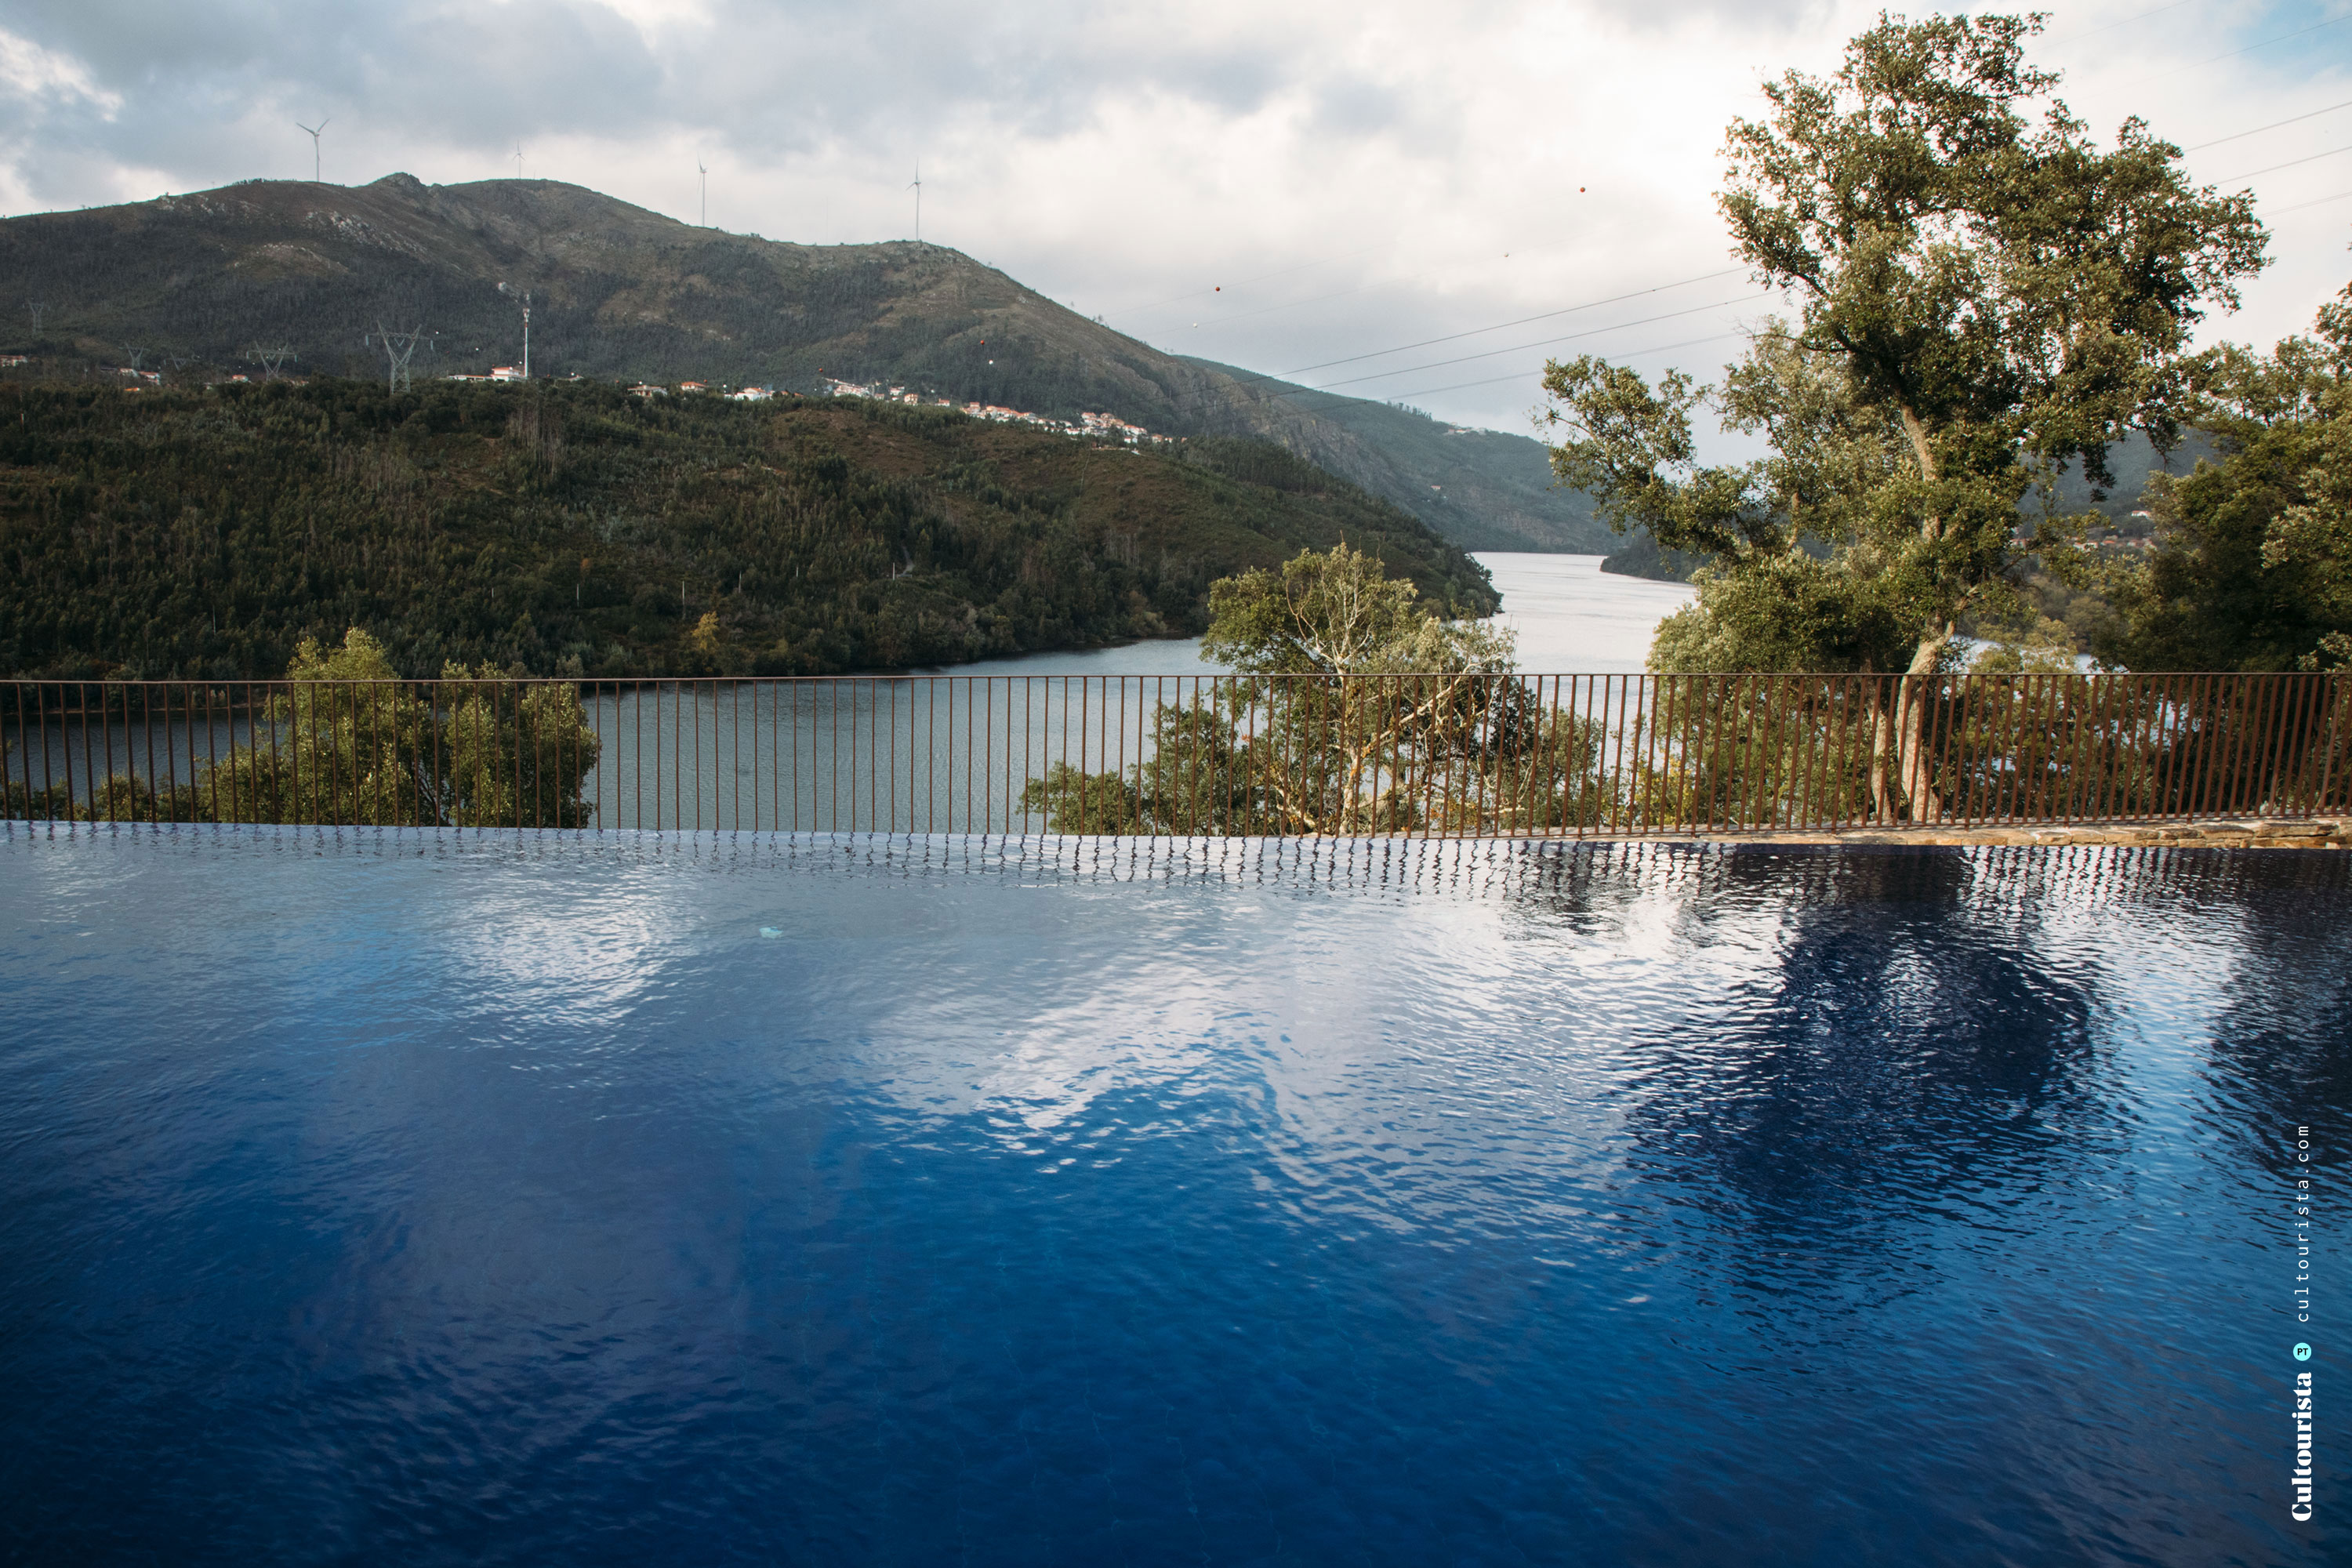 Exterior swimming pool at the Hotel Douro41 Portugal